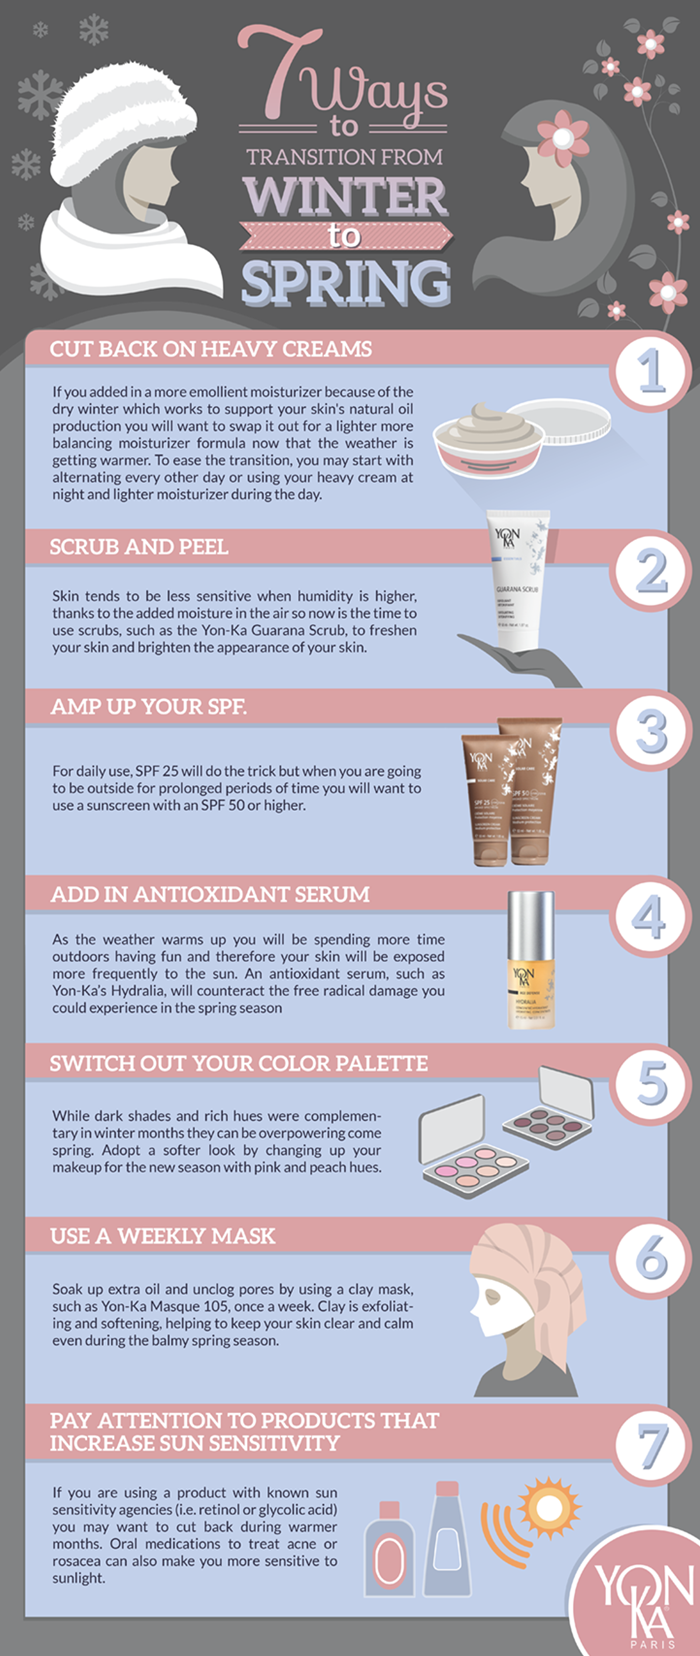 8 Ways to Transition Your Skincare Routine from Winter to Spring